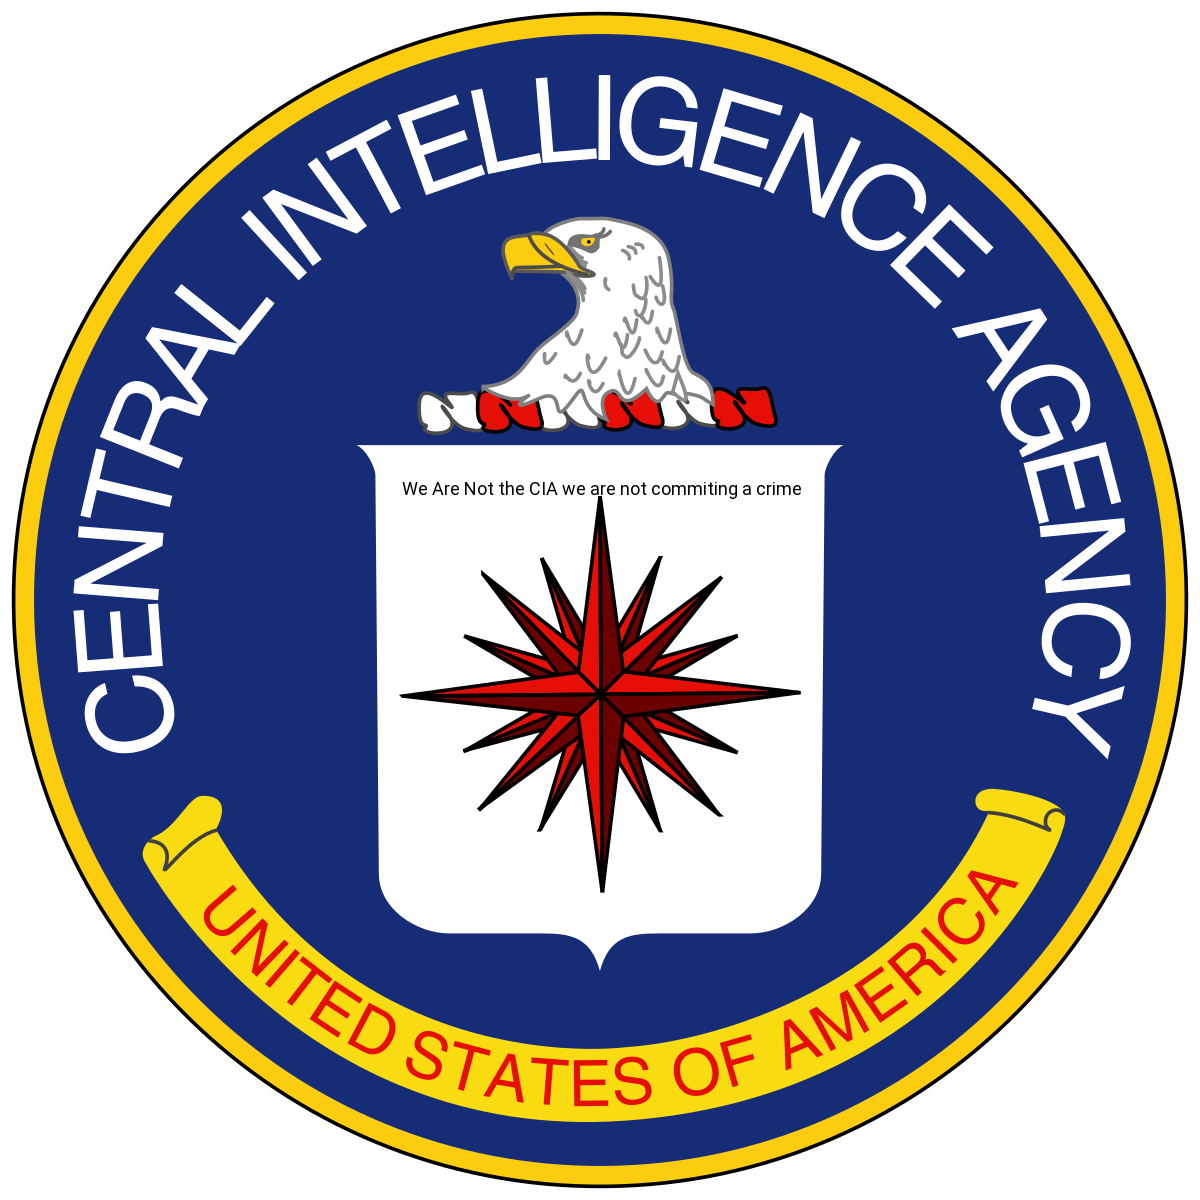 CiaLaid.Biz - We are not the CIA